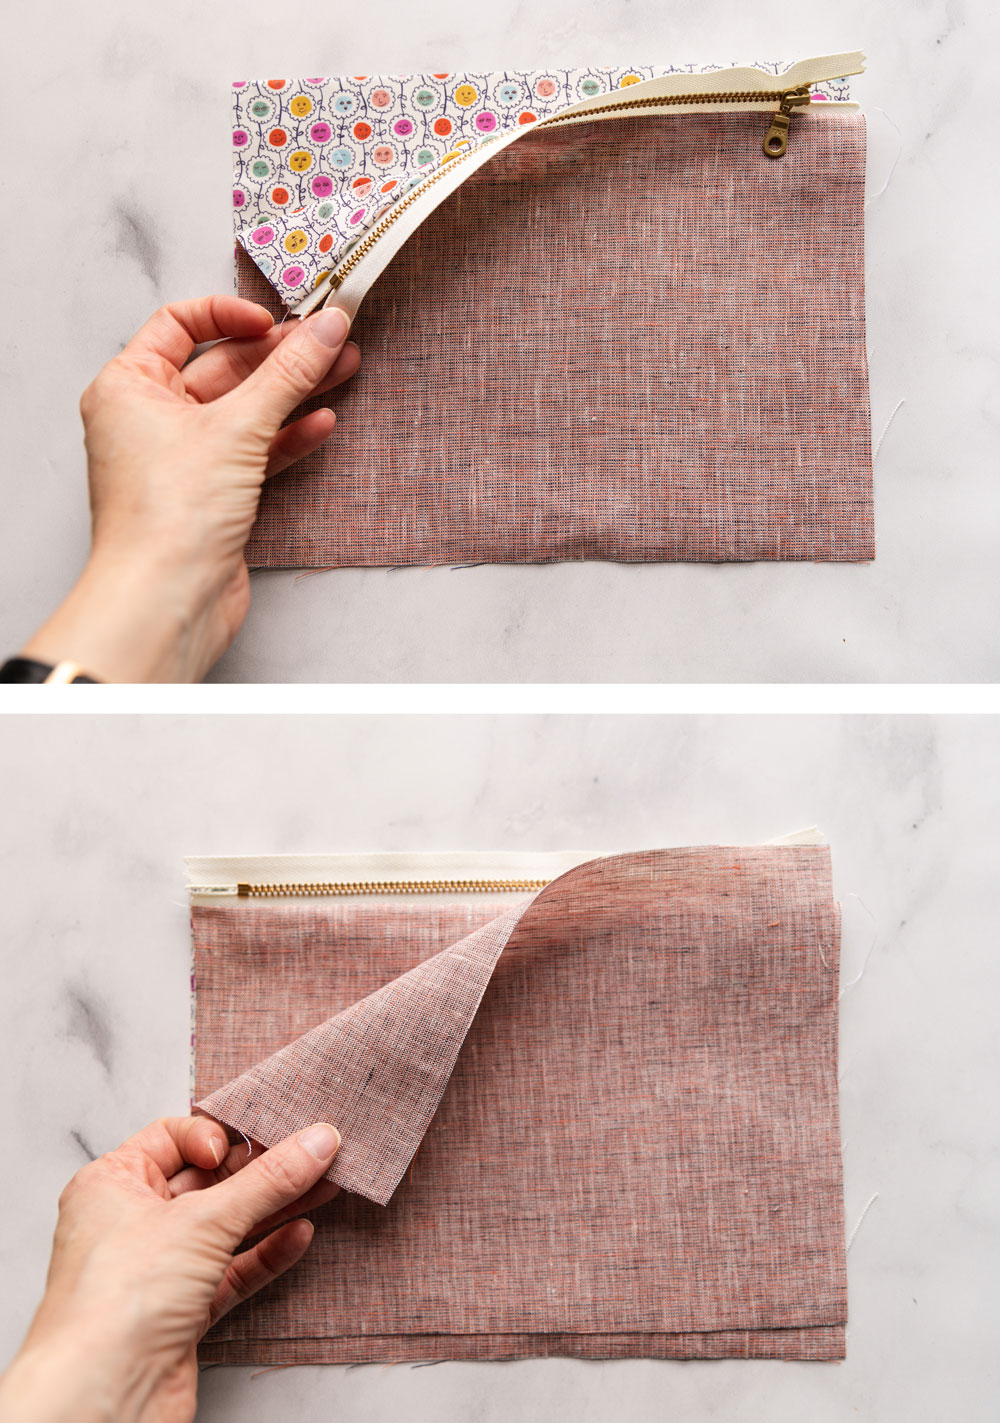 This easy zipper pouch tutorial shows exactly how to sew a simple pouch using scrap fabric and a zipper of any size. suzyquilts.com #zipperpouch #pouchtutorial